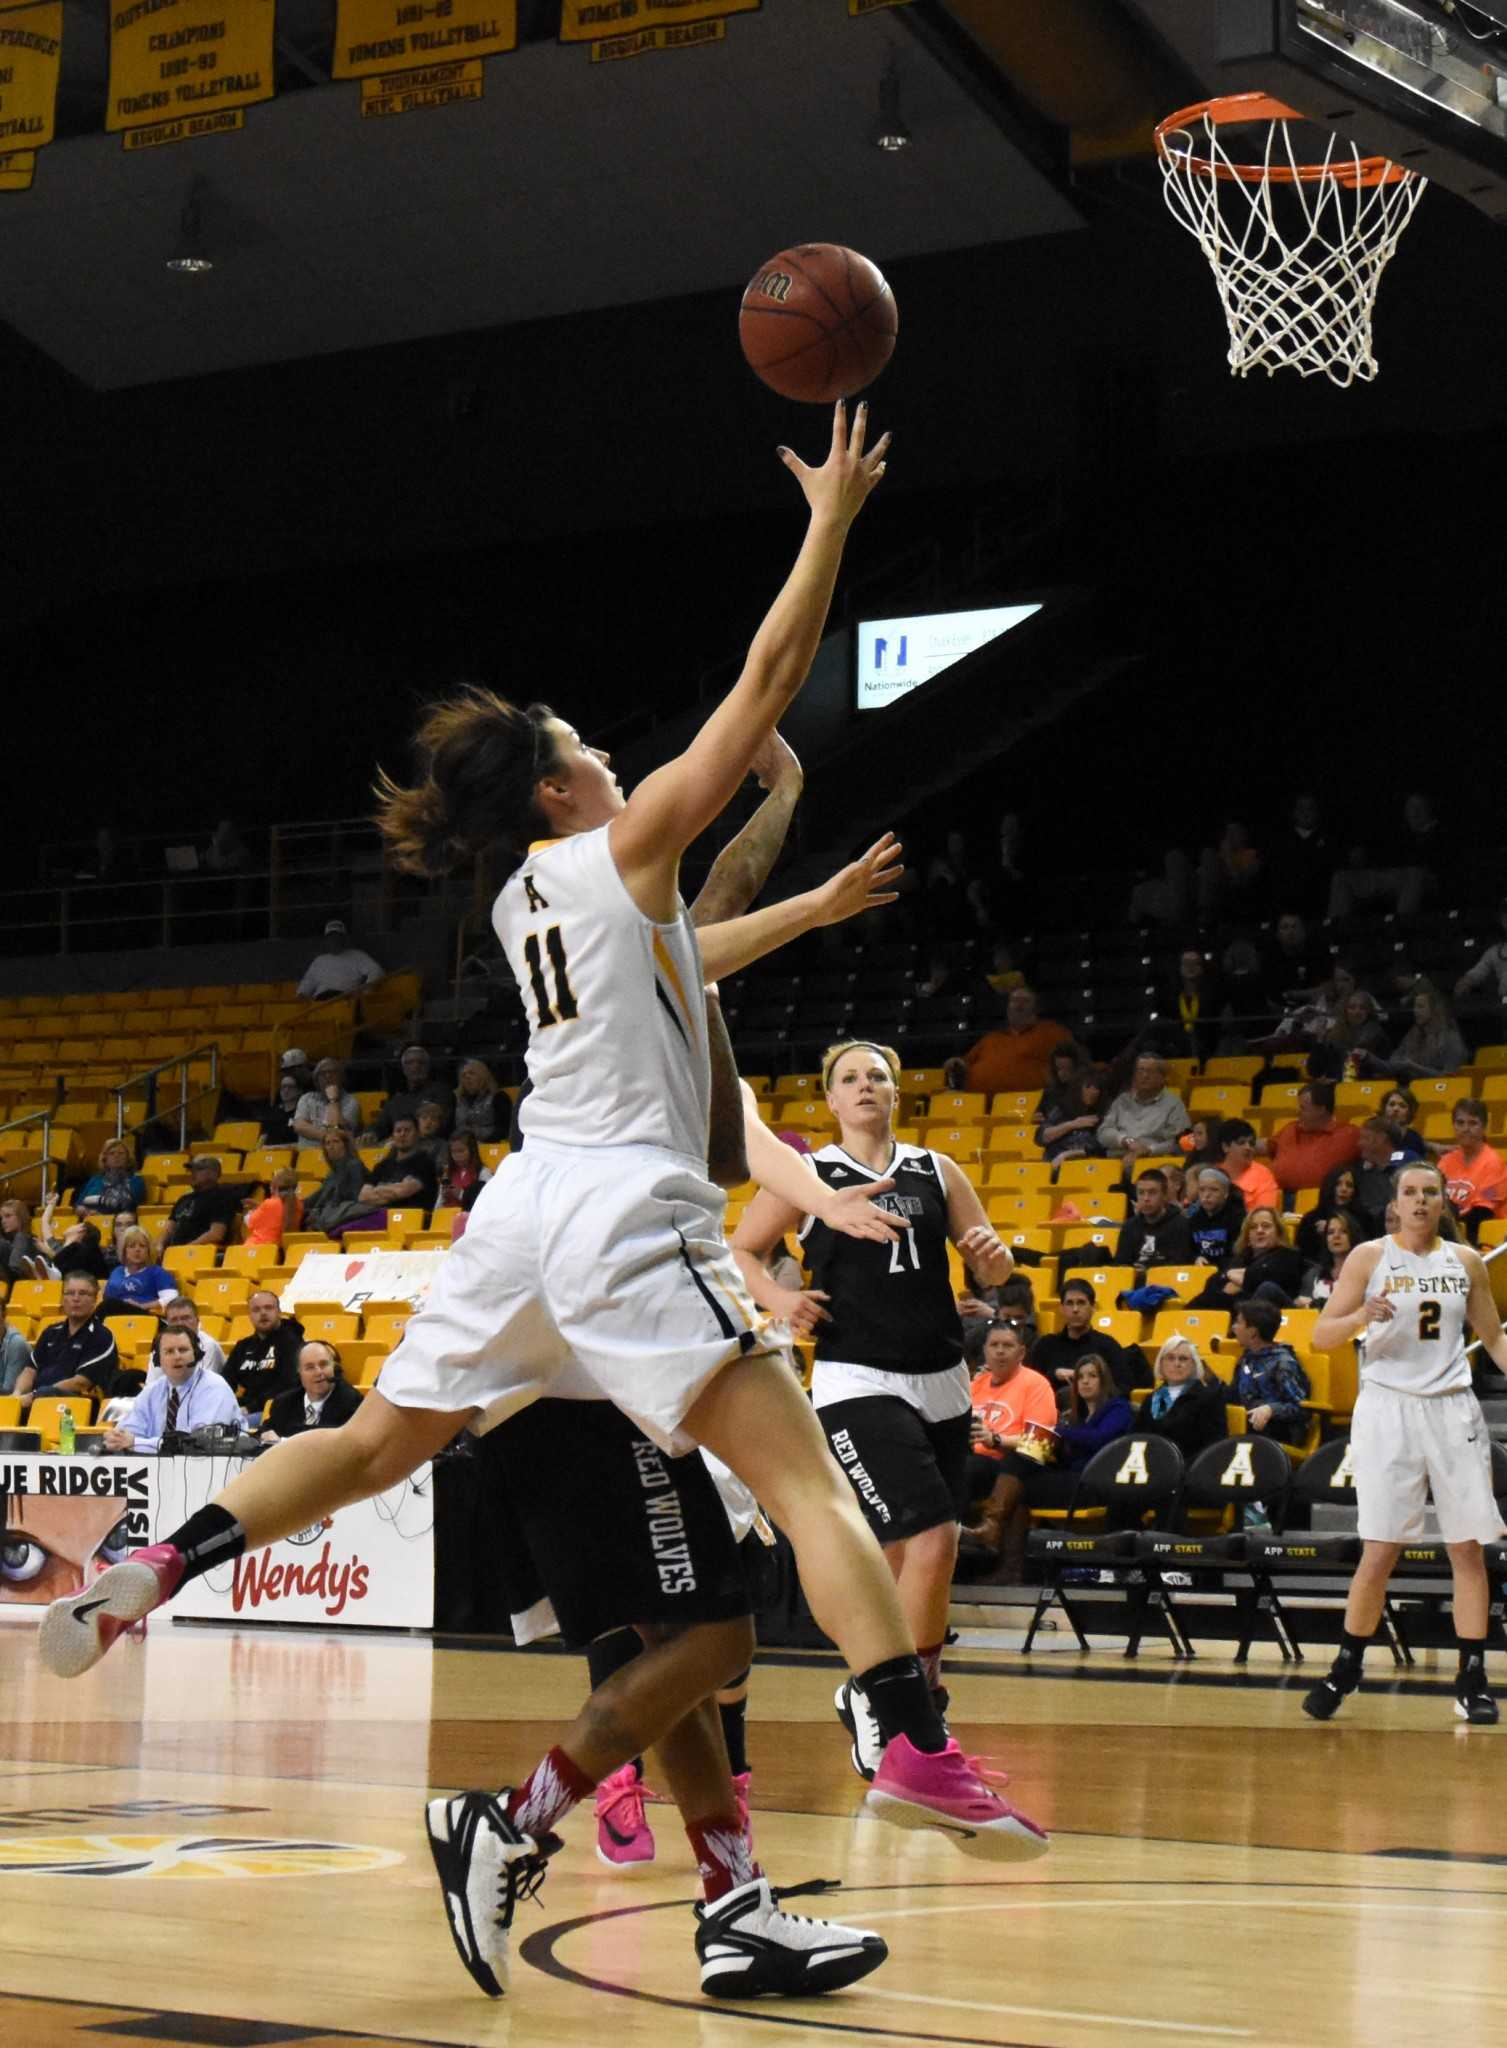 Freshman+Guard+Kaila+Craven+goes+up+for+a+contested+layup+against+Arkansas+State+University+on+Saturday+afternoon%2C+March+5.+74-83+%28L%29.+Photo+by+Dallas+Linger%2C+Photo+Editor.